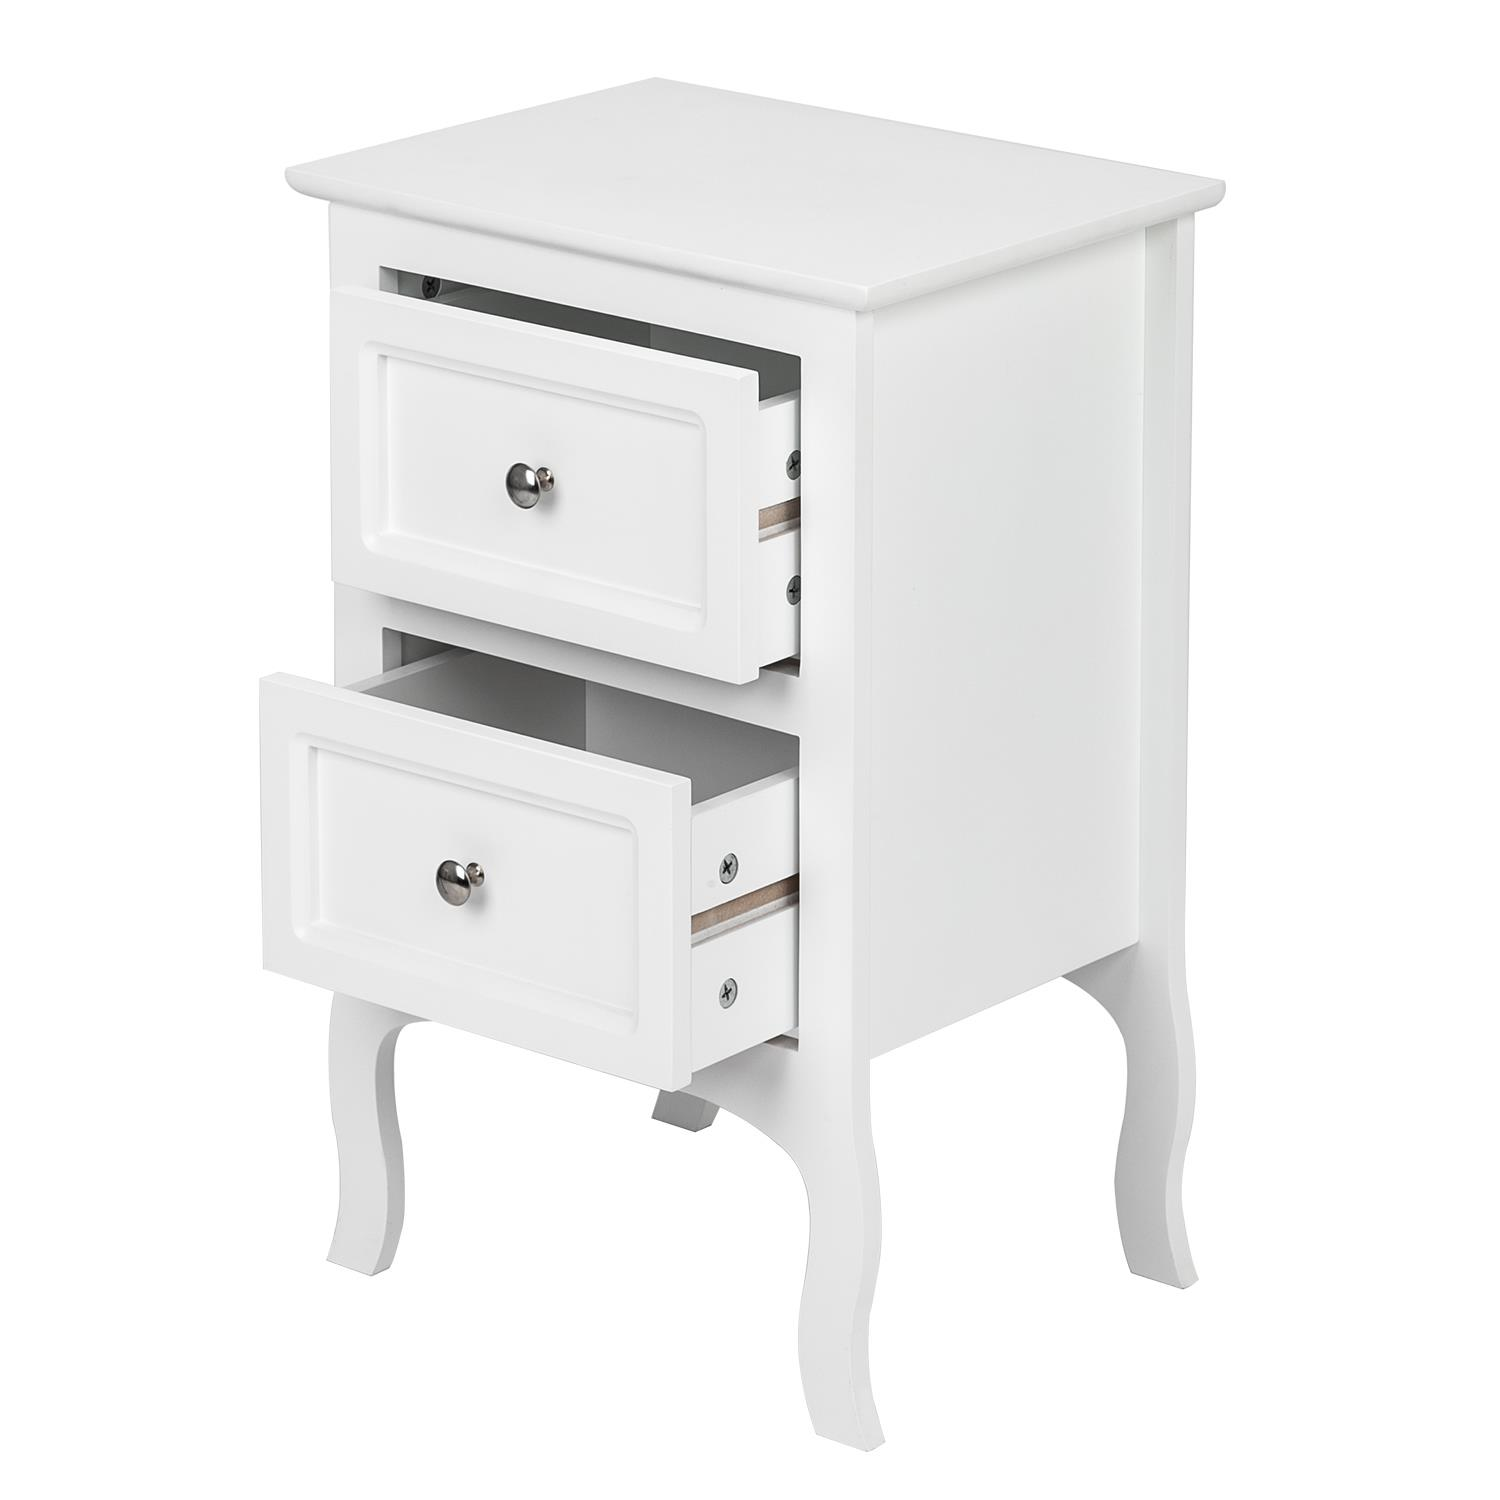 Home Garden 3 Drawers Nightstand Storage Wood End Table